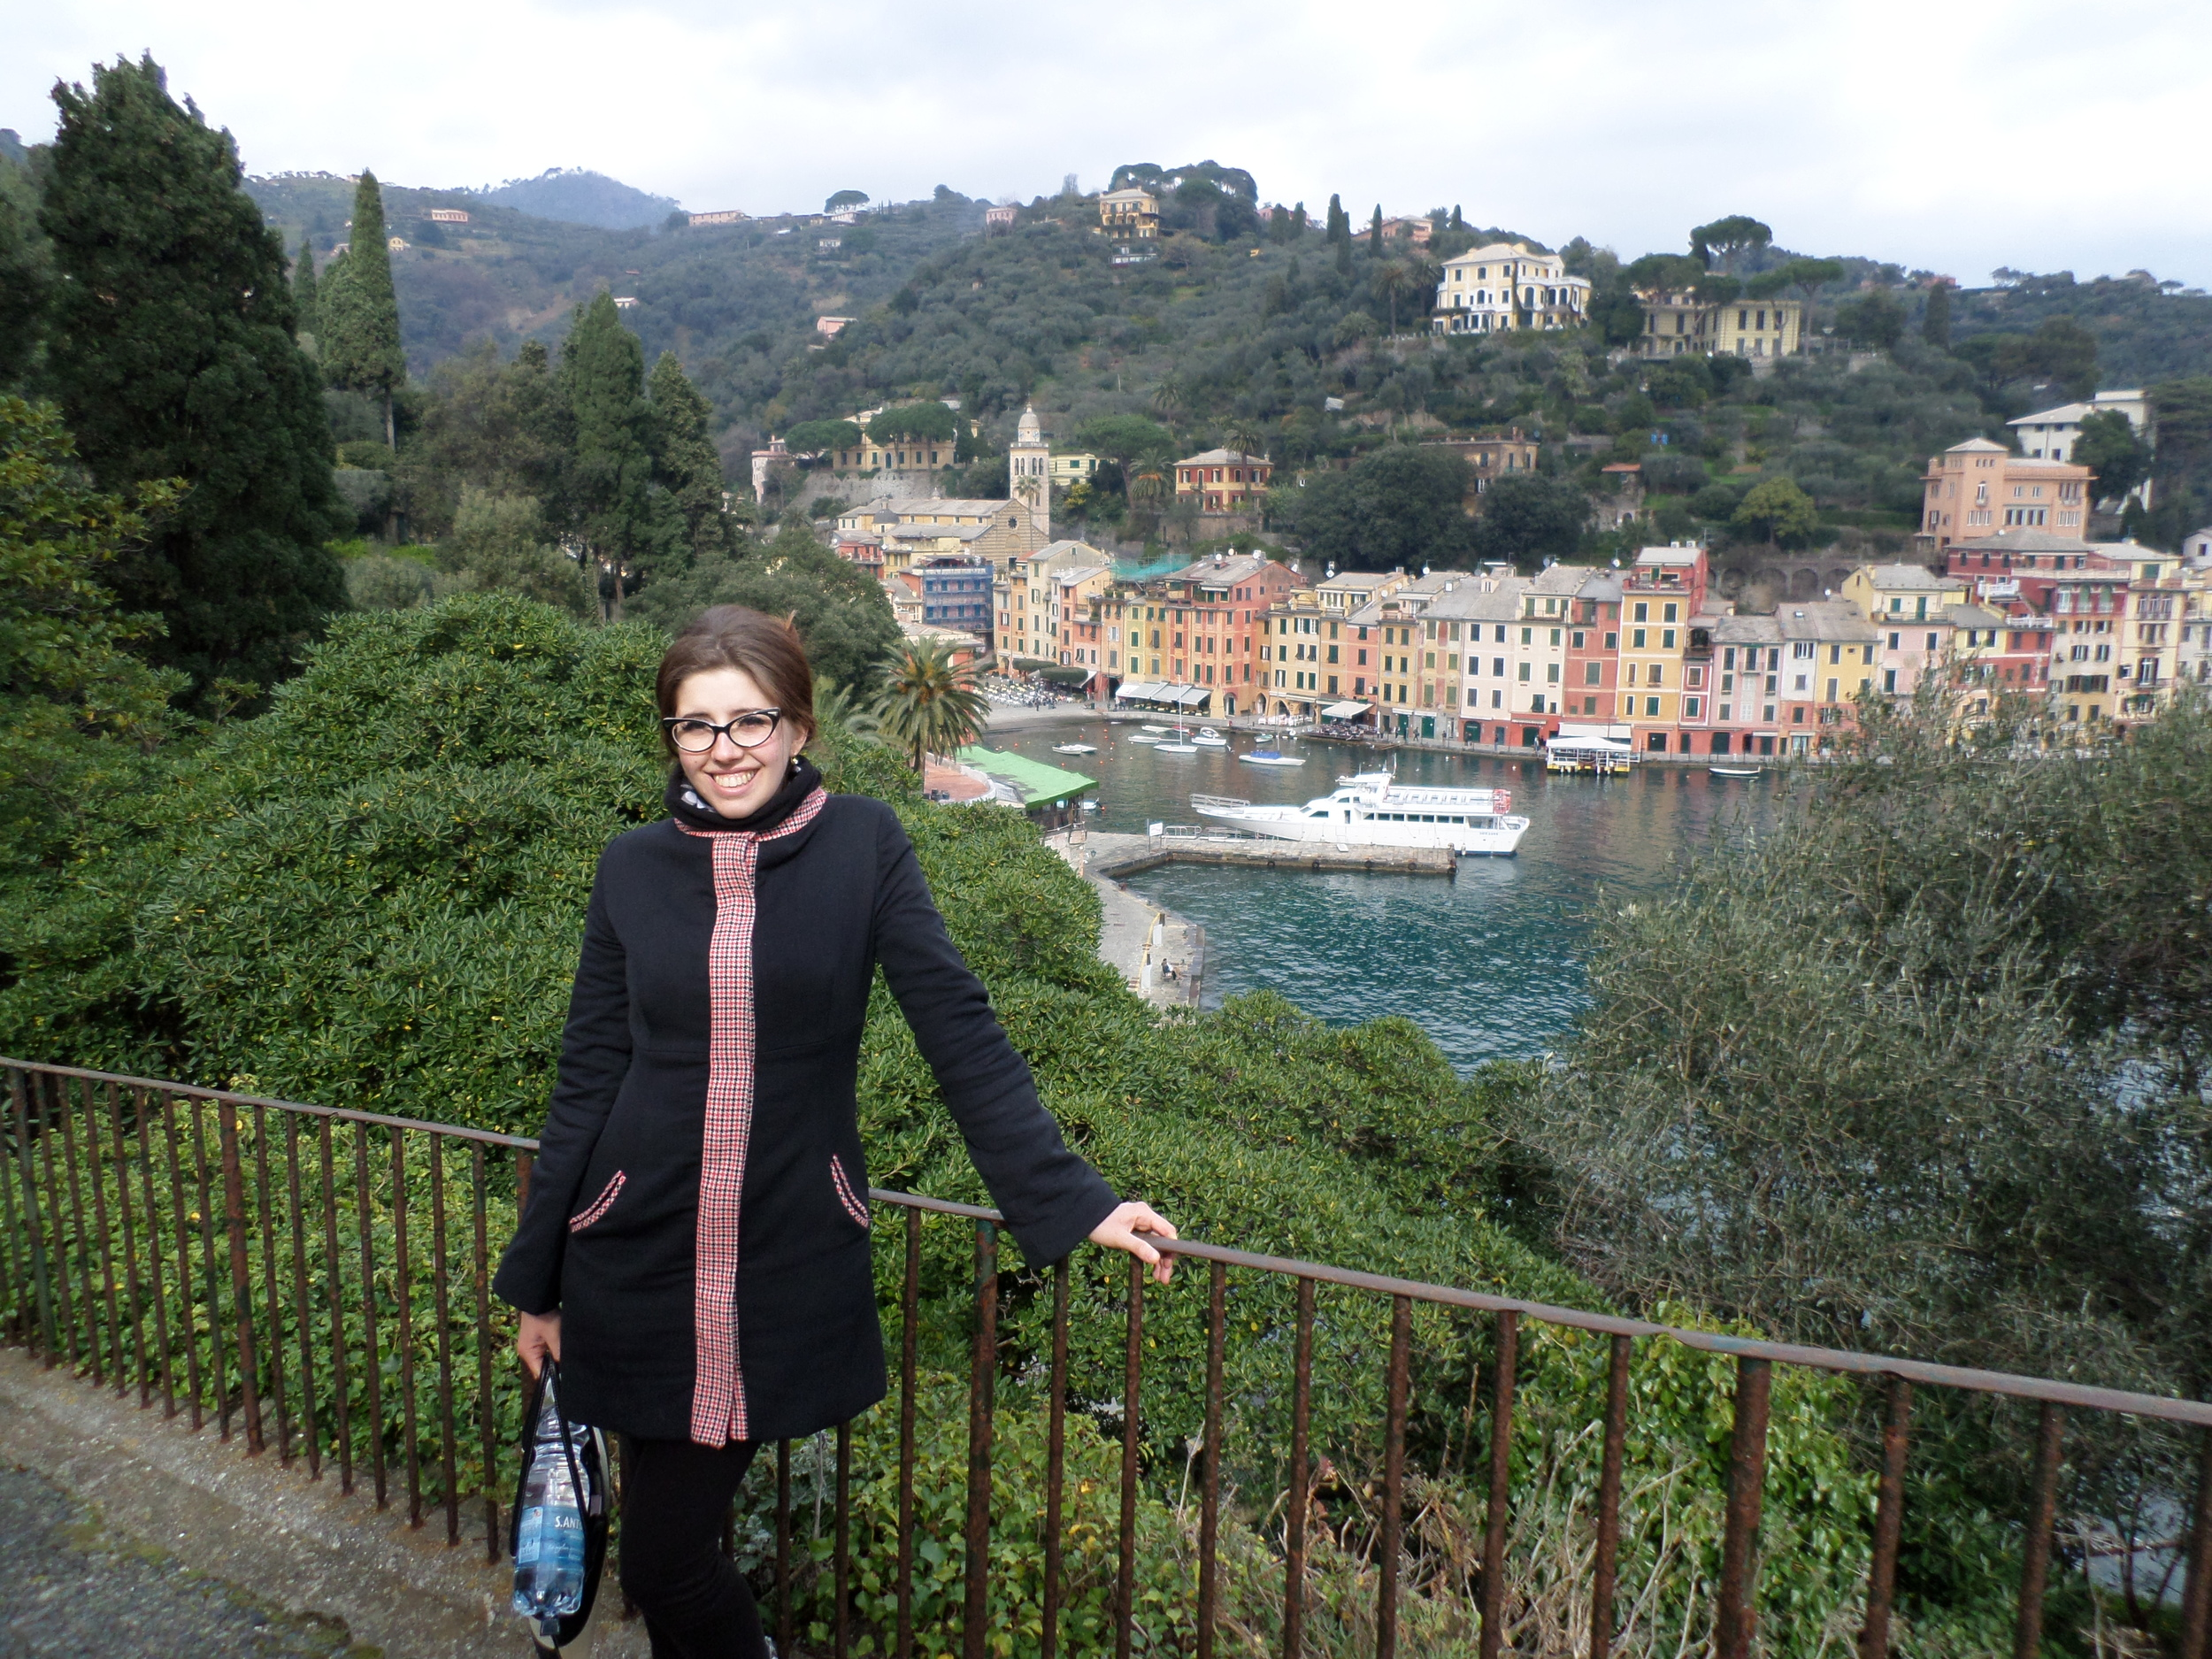 Fitting in (I hope!) with the gorgeous Portofino landscape.